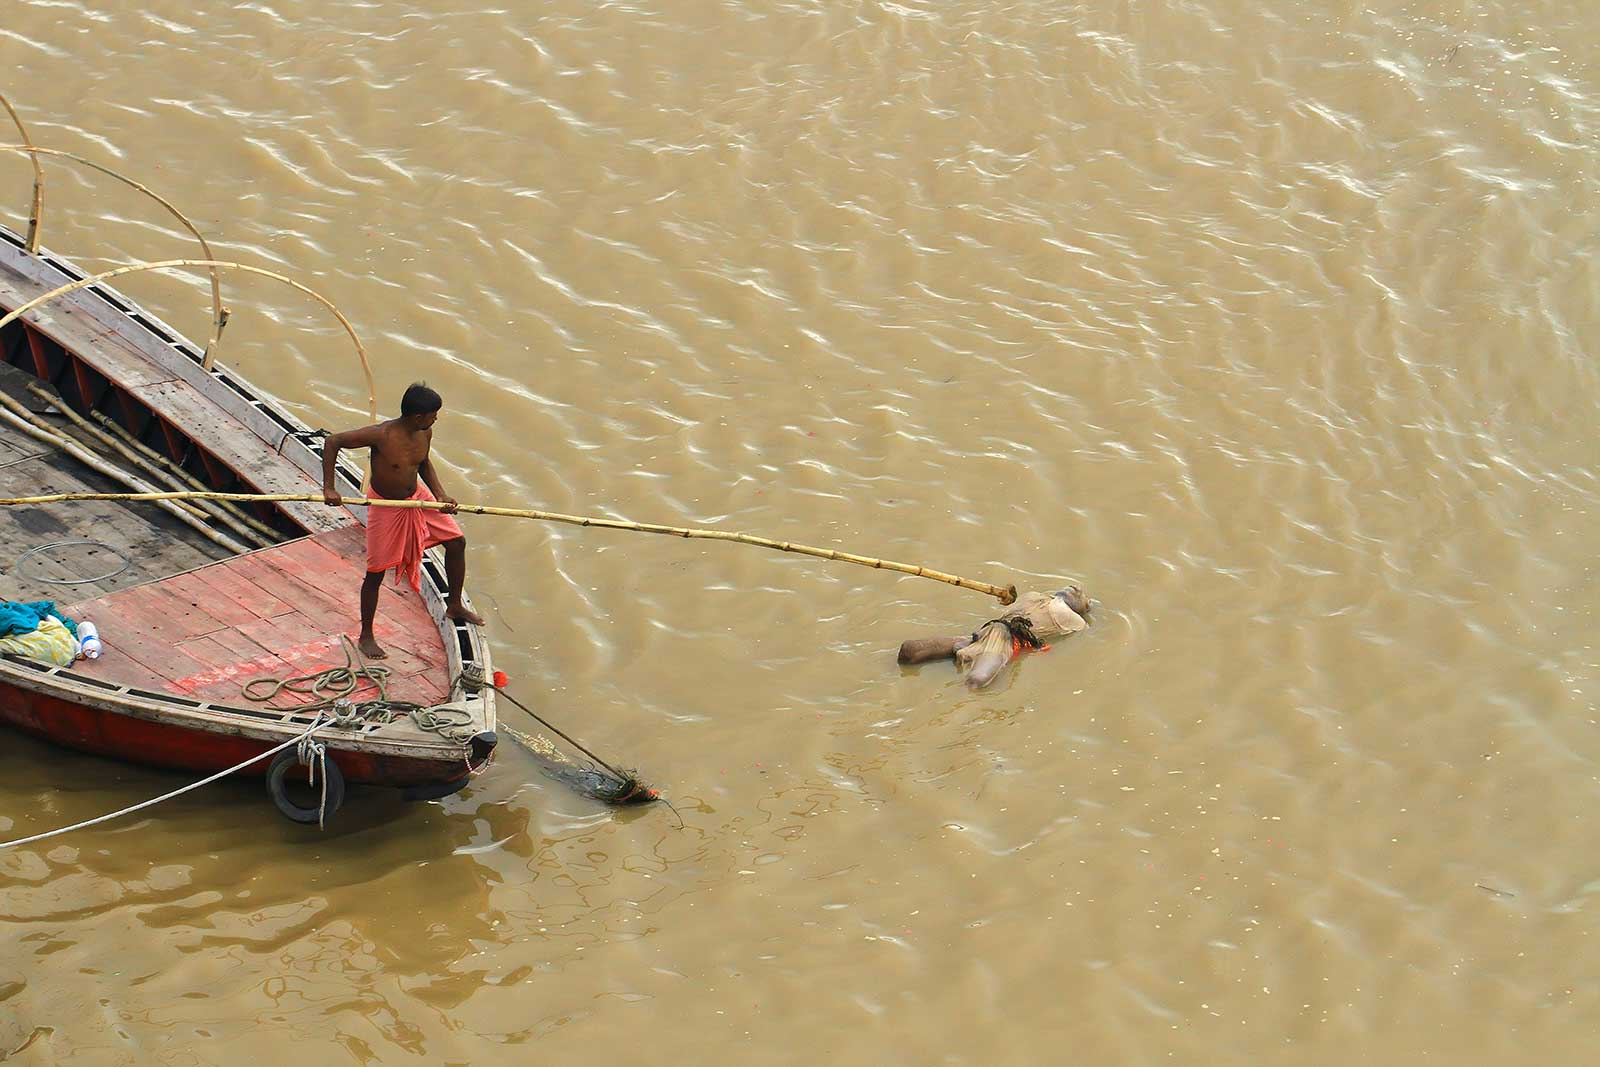 A dead body floating in the Ganges river in Varanasi, India.